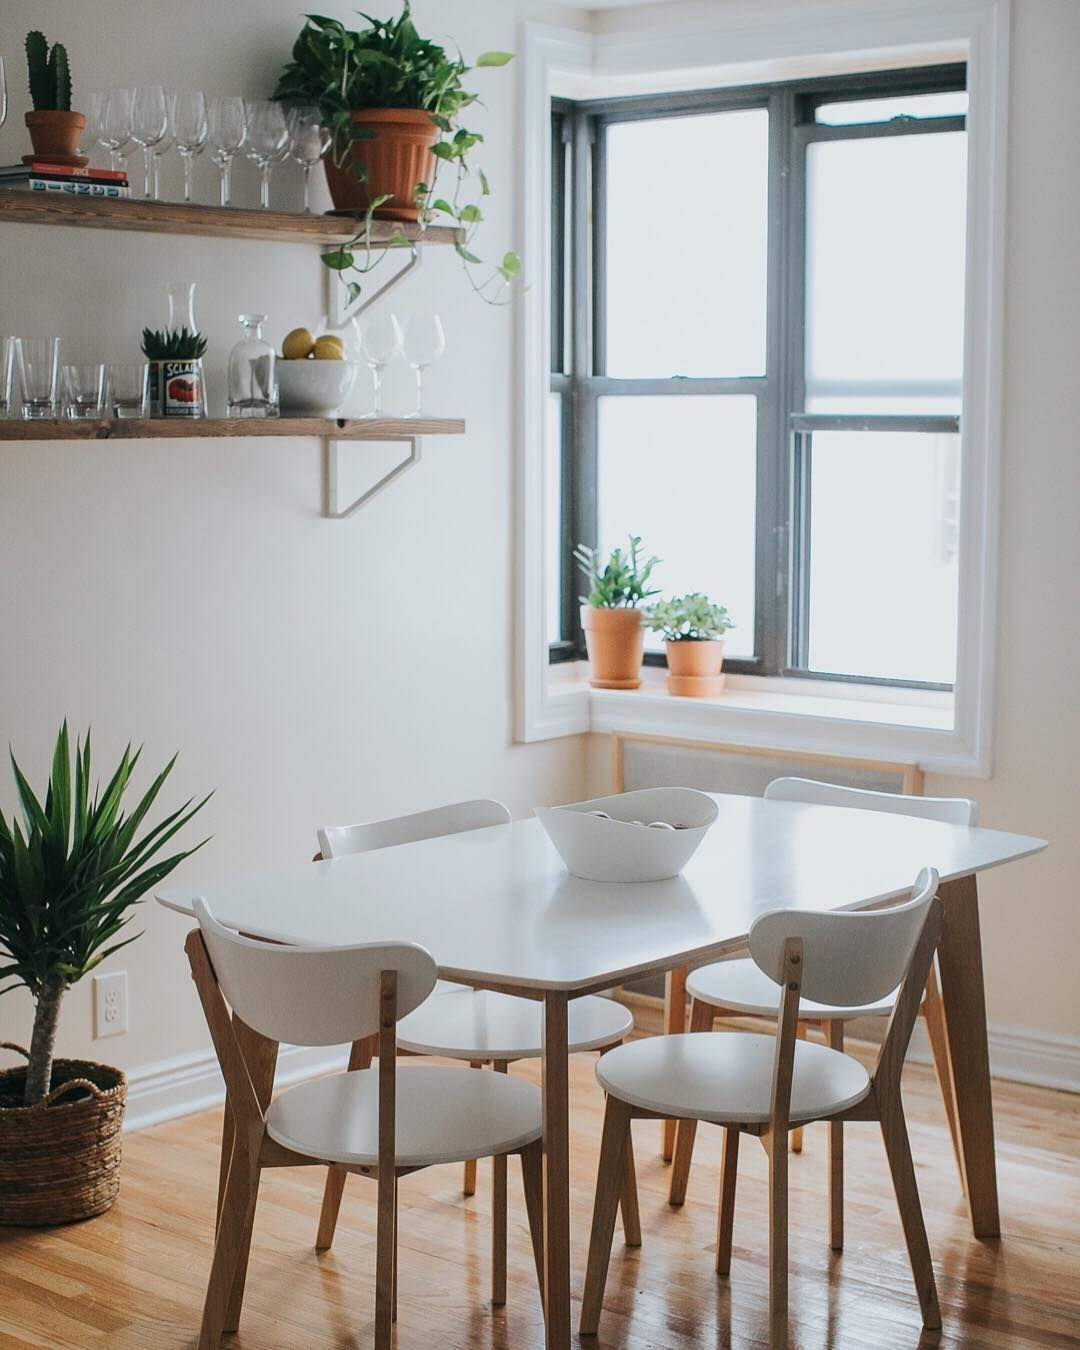 What Is Hot On Pinterest Halloween Decor Dining Room Small Minimalist Dining Room Dining Room Decor